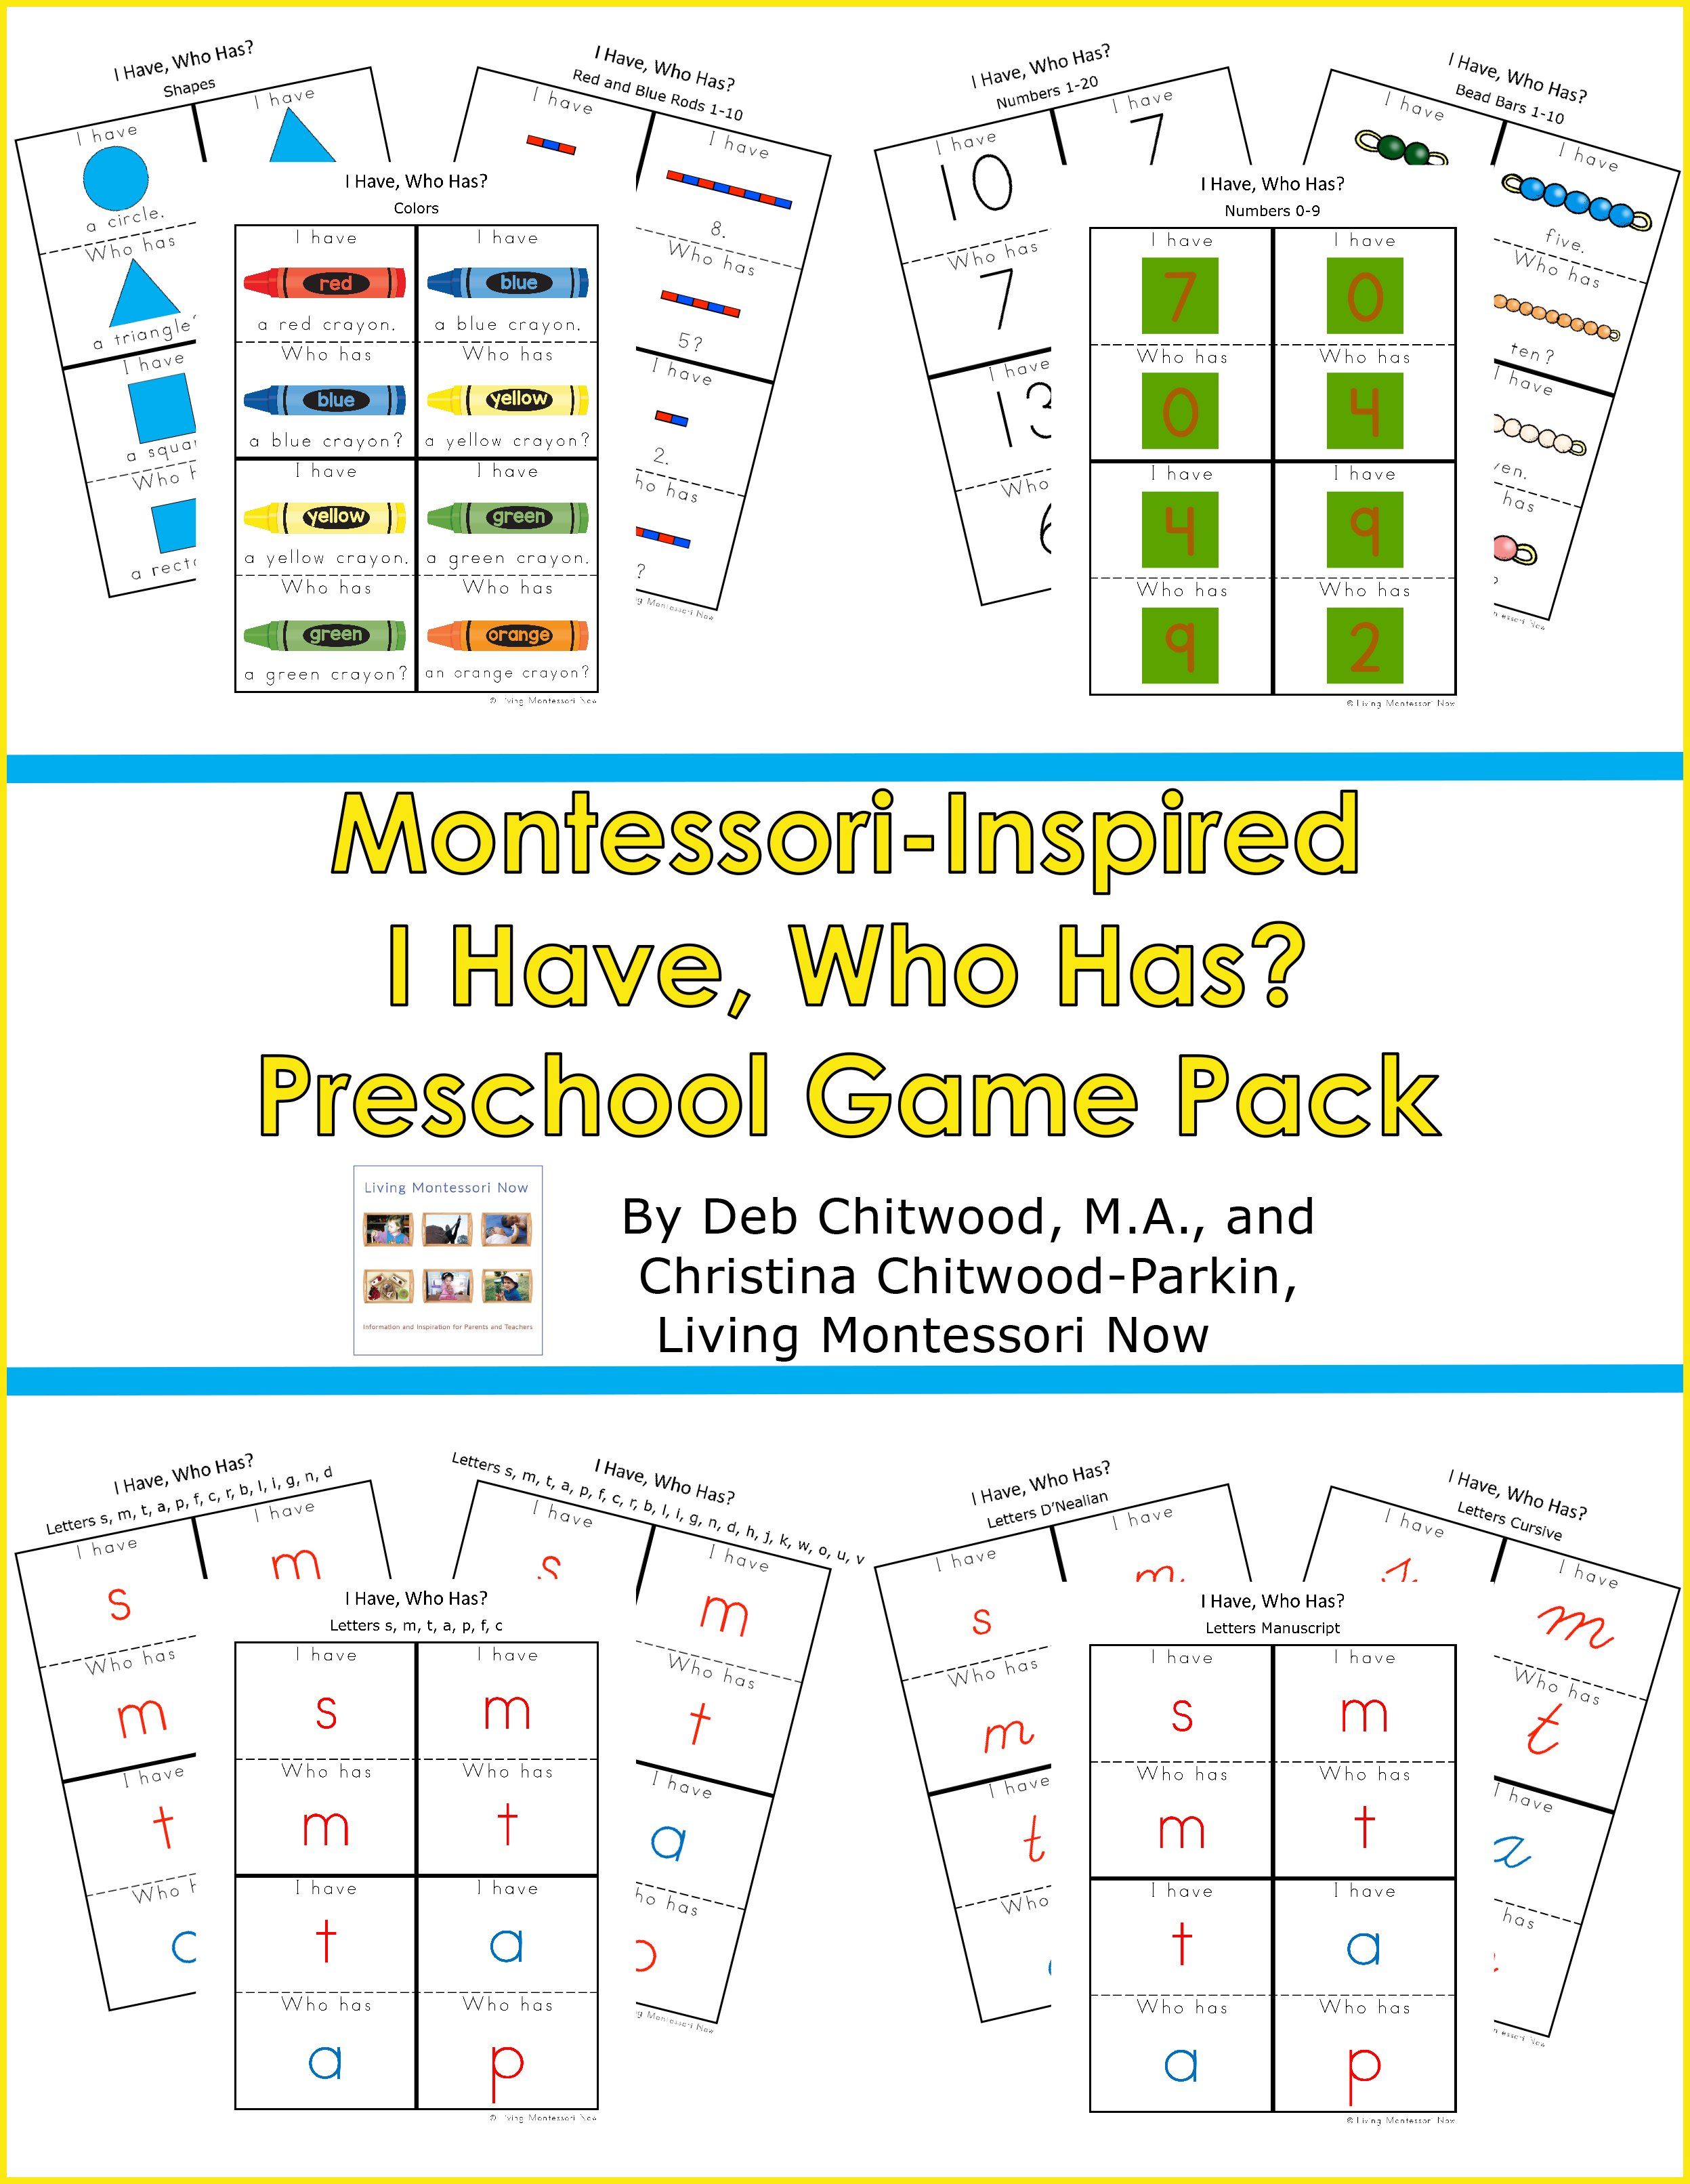 Montessori-Inspired I Have, Who Has Preschool Game Pack